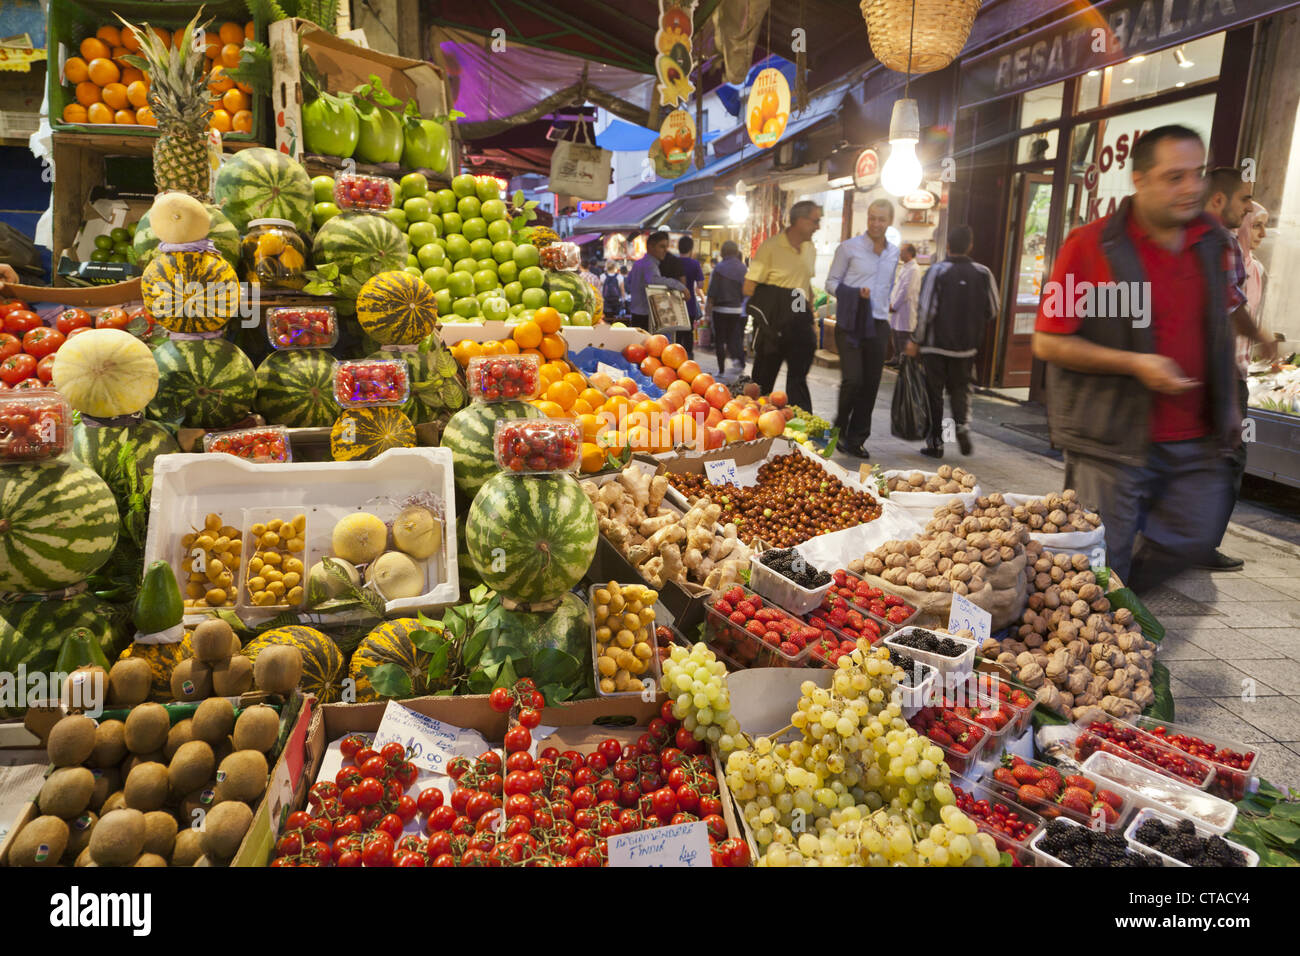 Fruit stall at the market in Beyoglu, Istanbul, Turkey, Europe - Stock Image